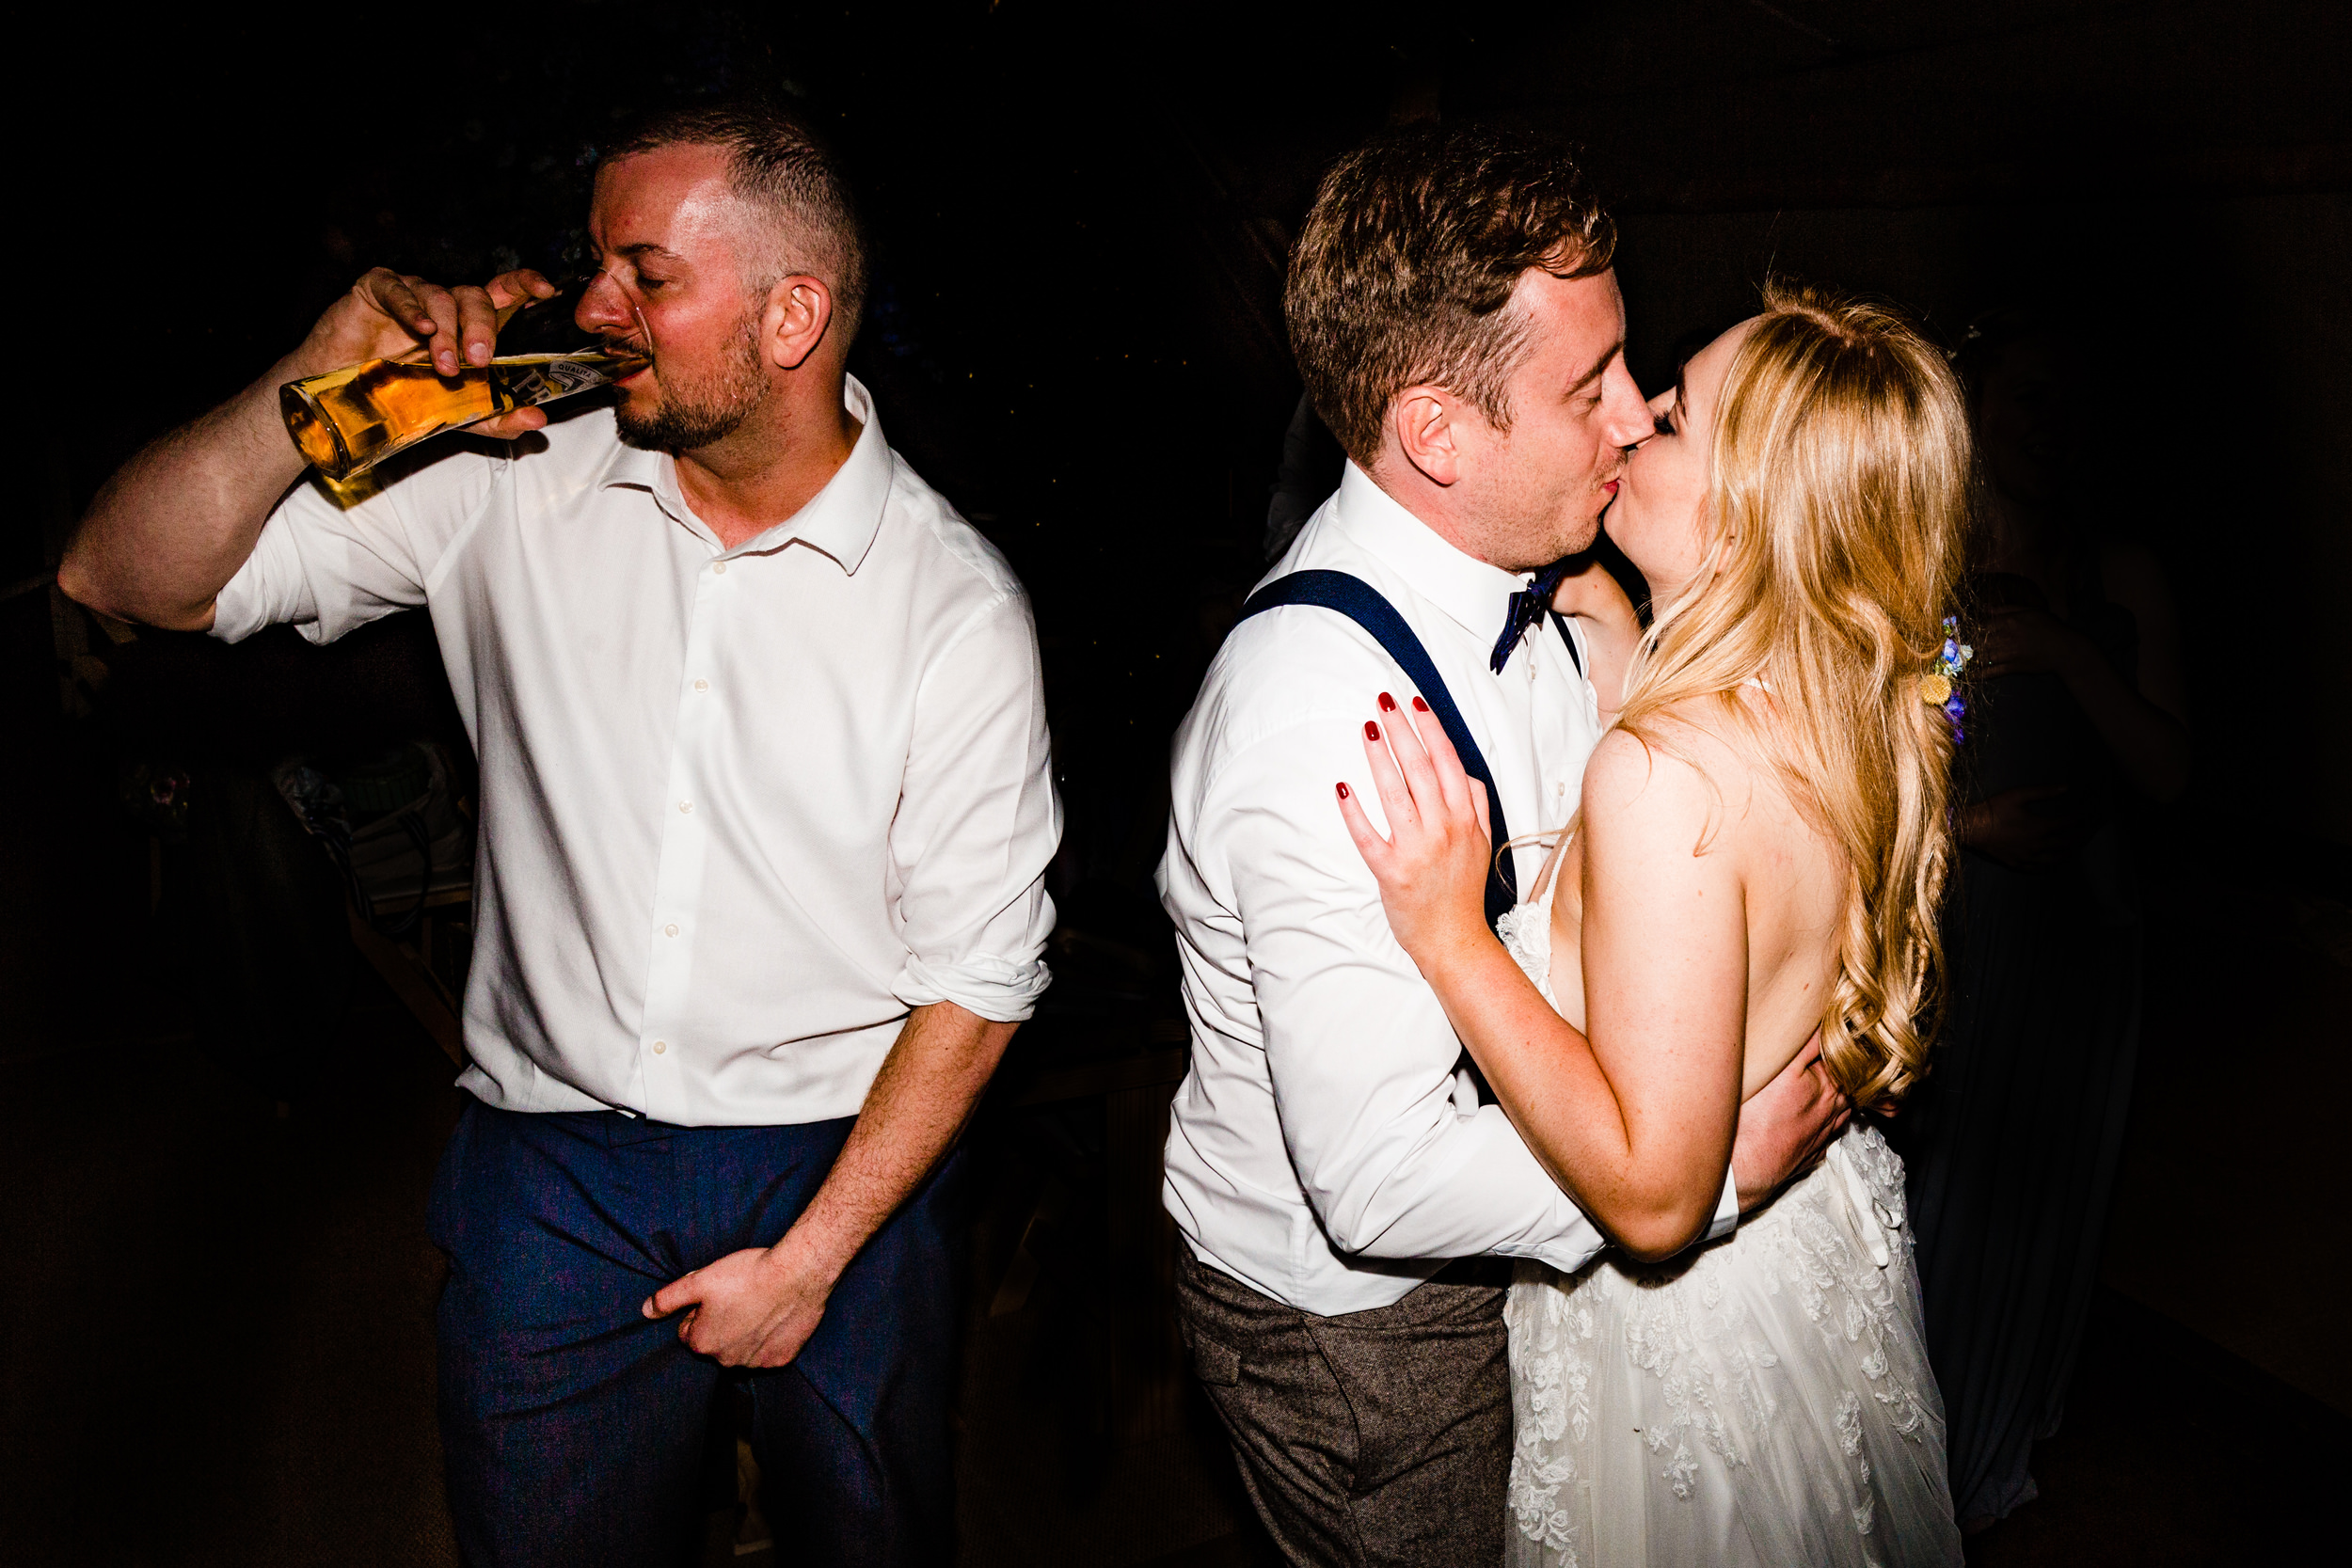 guest drinks beer next to newlyweds. wildwood and eden wedding photography by emma and rich.